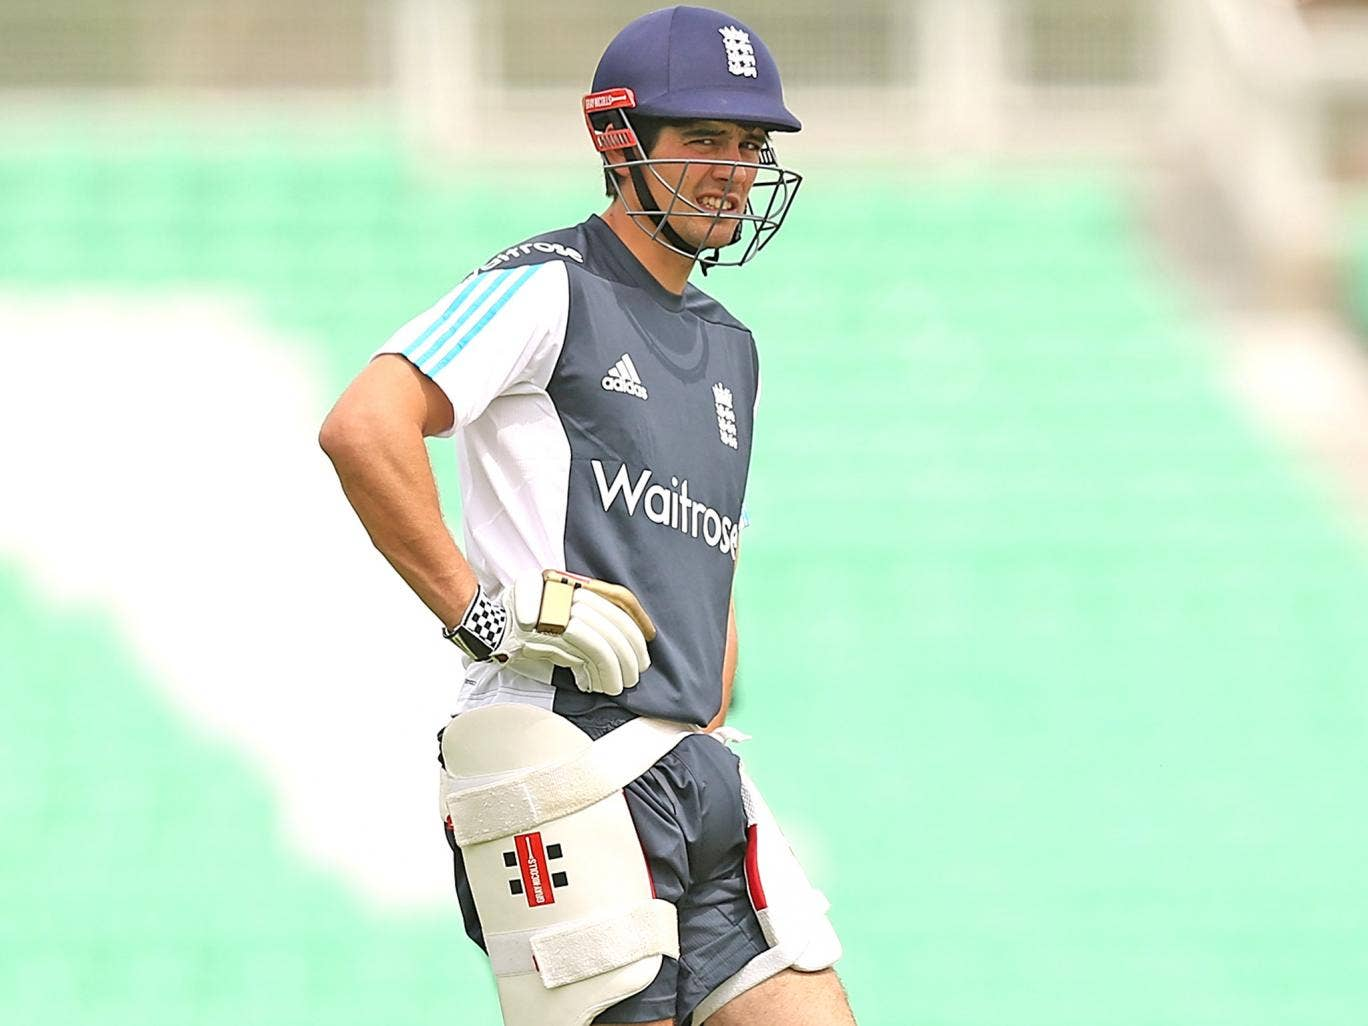 The England captain, Alastair Cook, has only nine months to build a team to win the World Cup